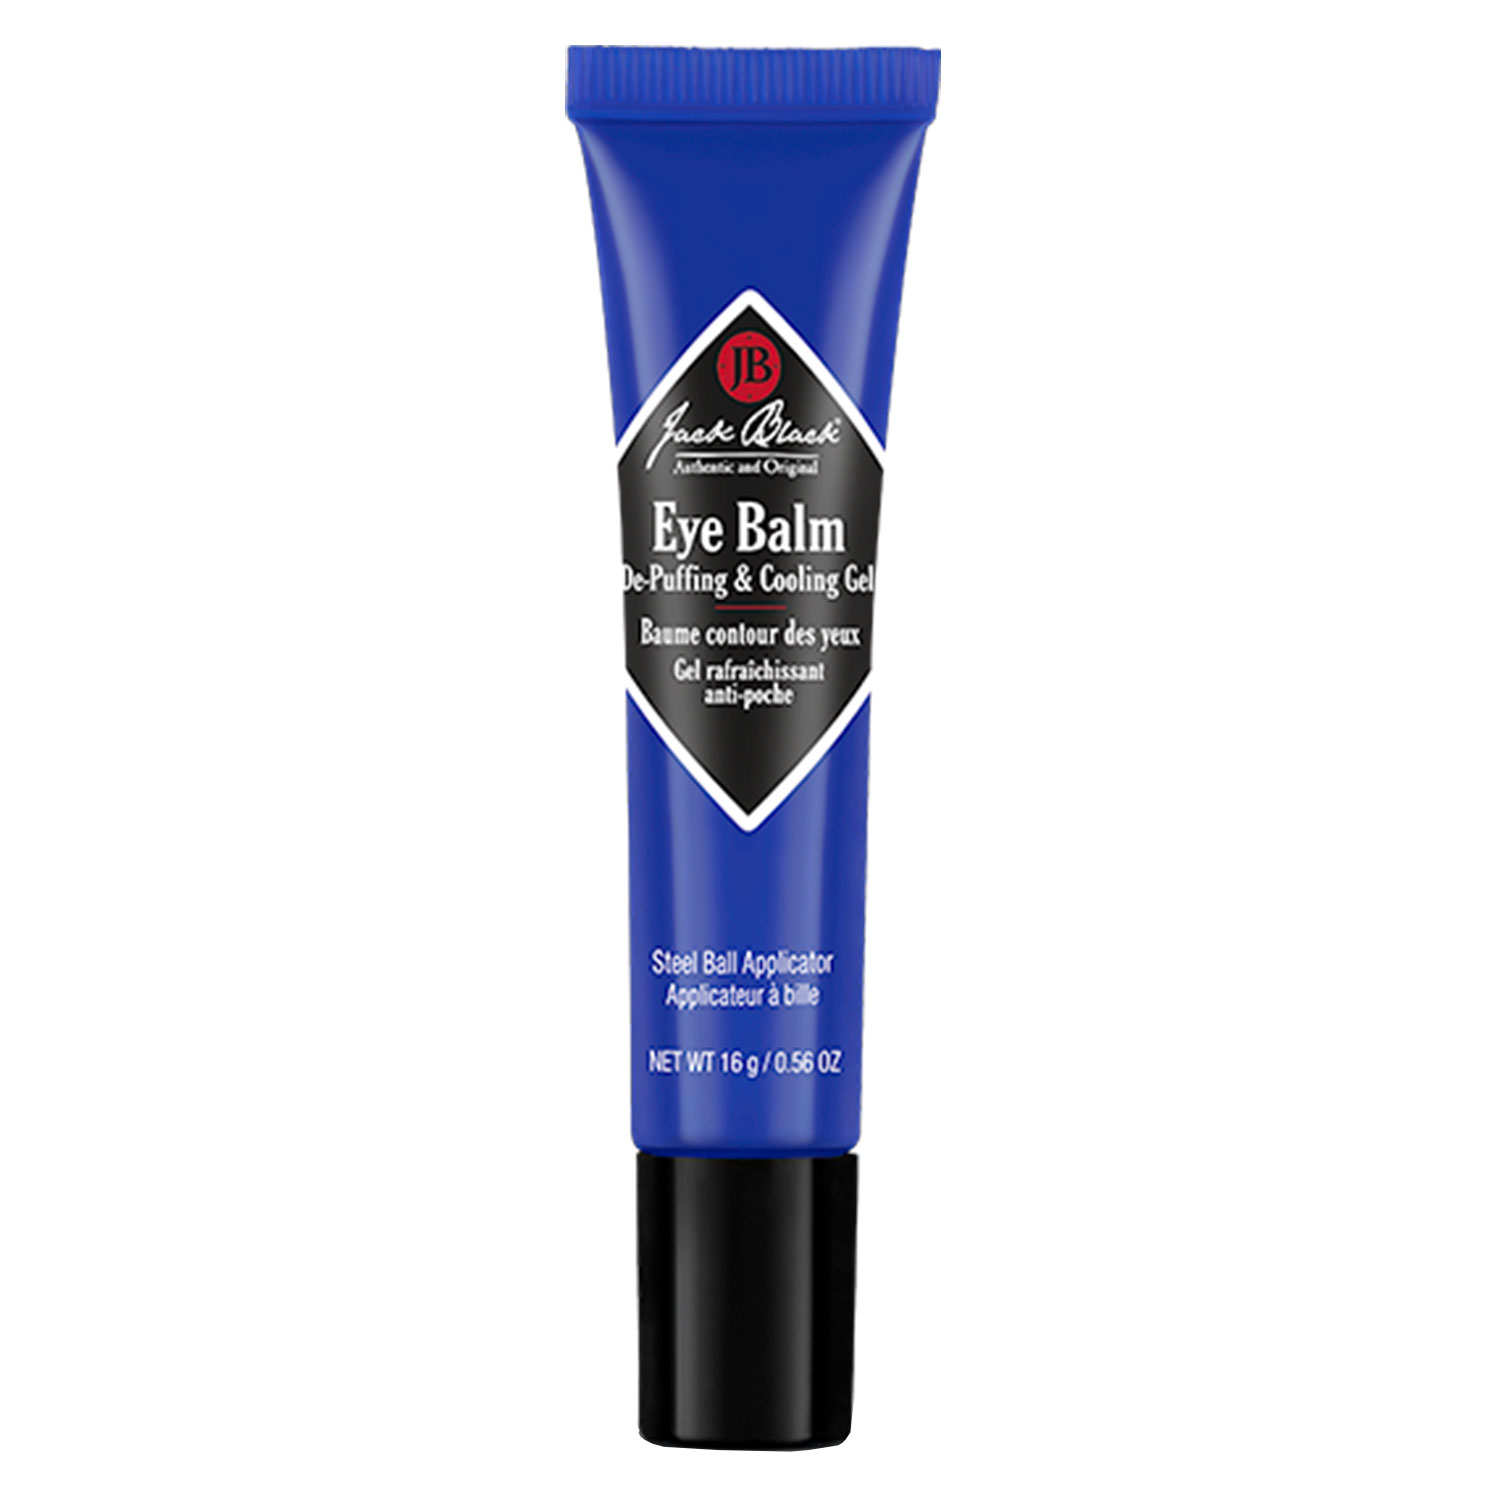 Jack Black - Eye Balm Depuffing & Cooling Gel